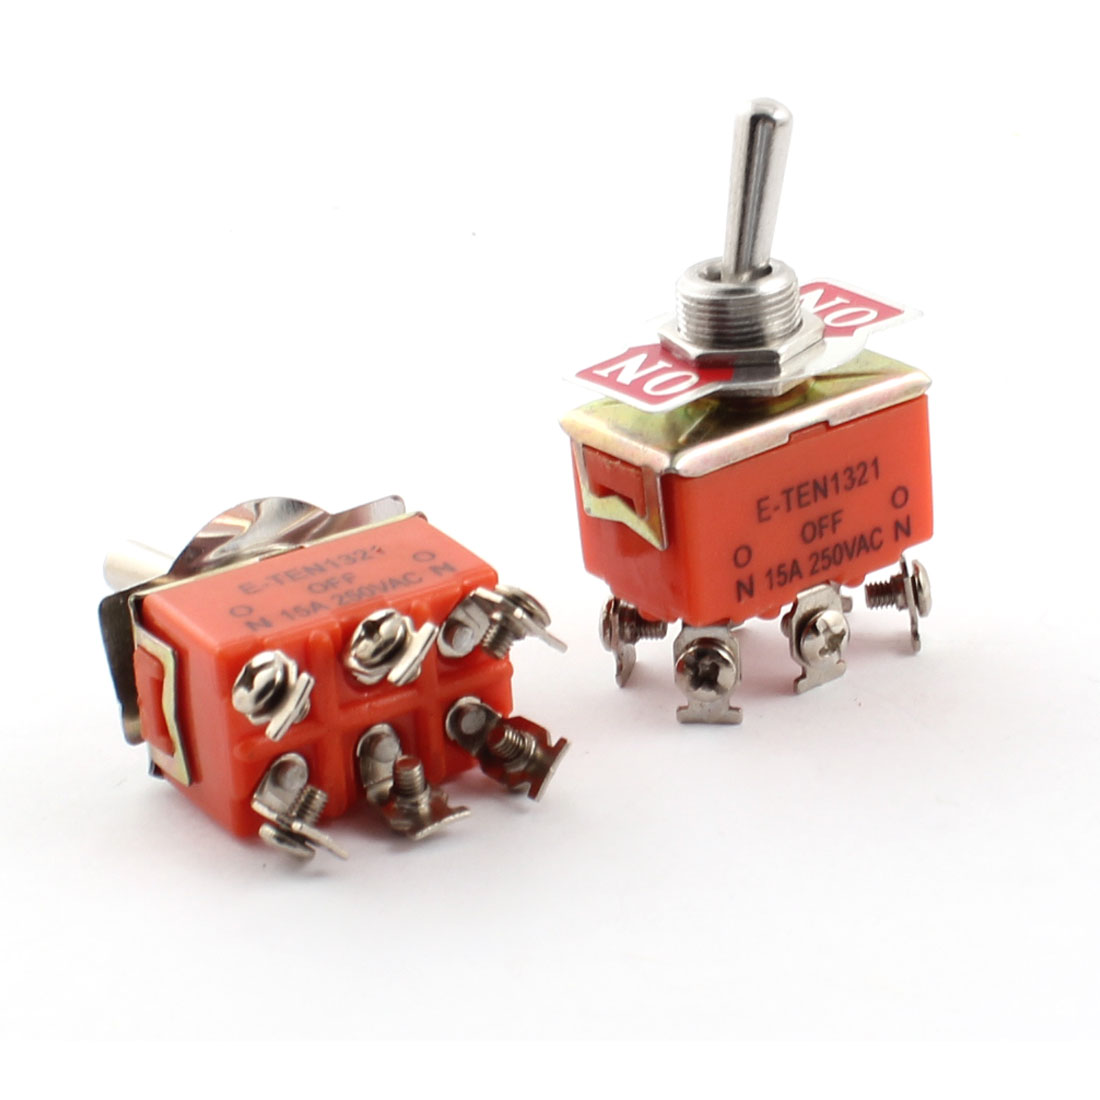 2PCS ON-ON 2-Position DPDT Self-Locking 6 Terminals Toggle Switch AC 250V 15A